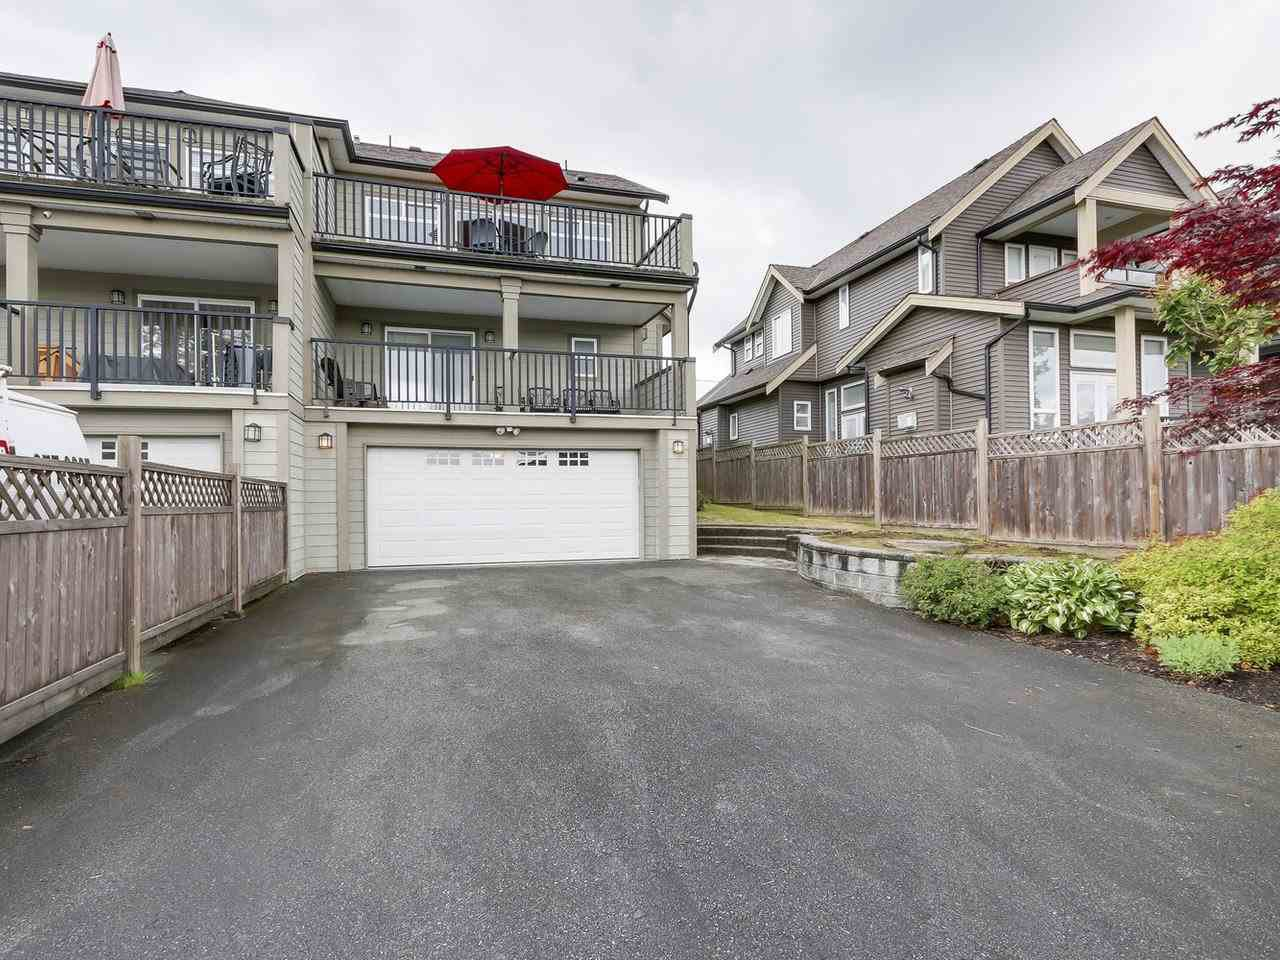 Photo 20: Photos: 1044B CHARLAND Avenue in Coquitlam: Central Coquitlam House 1/2 Duplex for sale : MLS®# R2172343